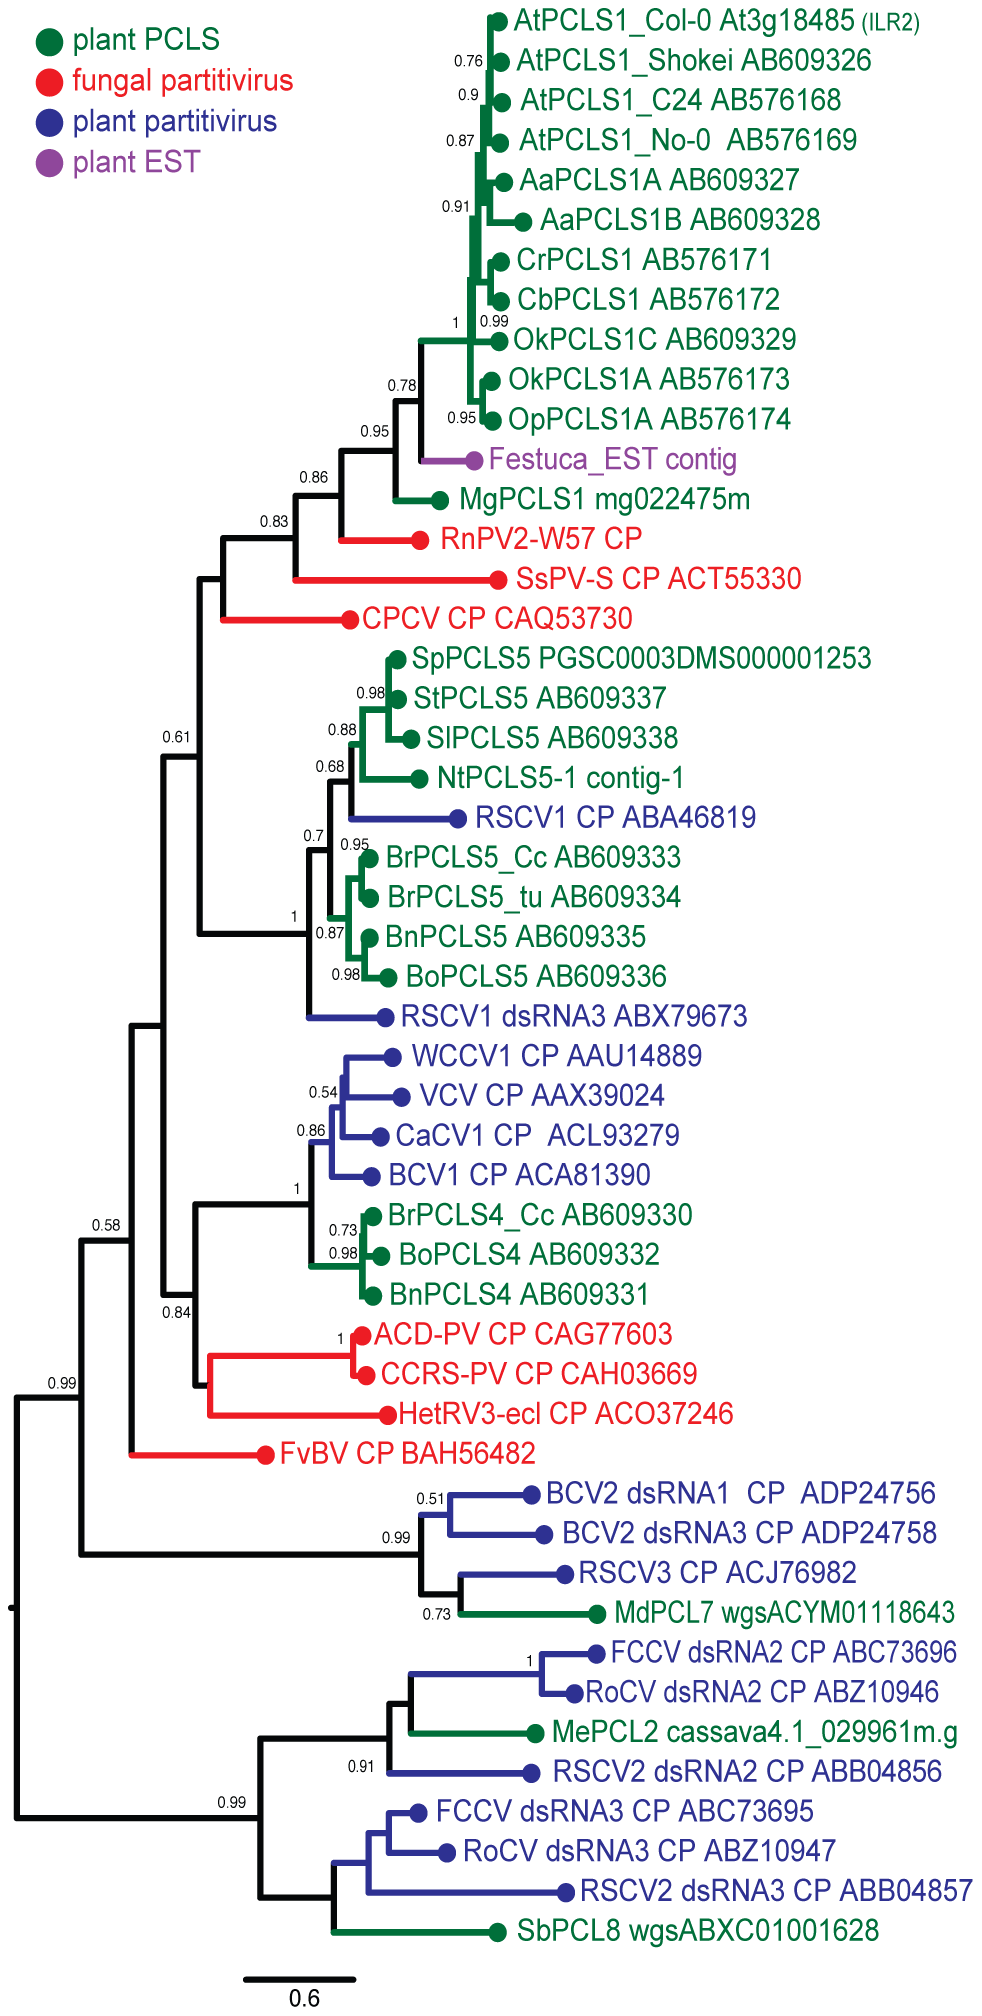 Molecular phylogenetic analysis of partitivirus CPs and plant PCLSs.